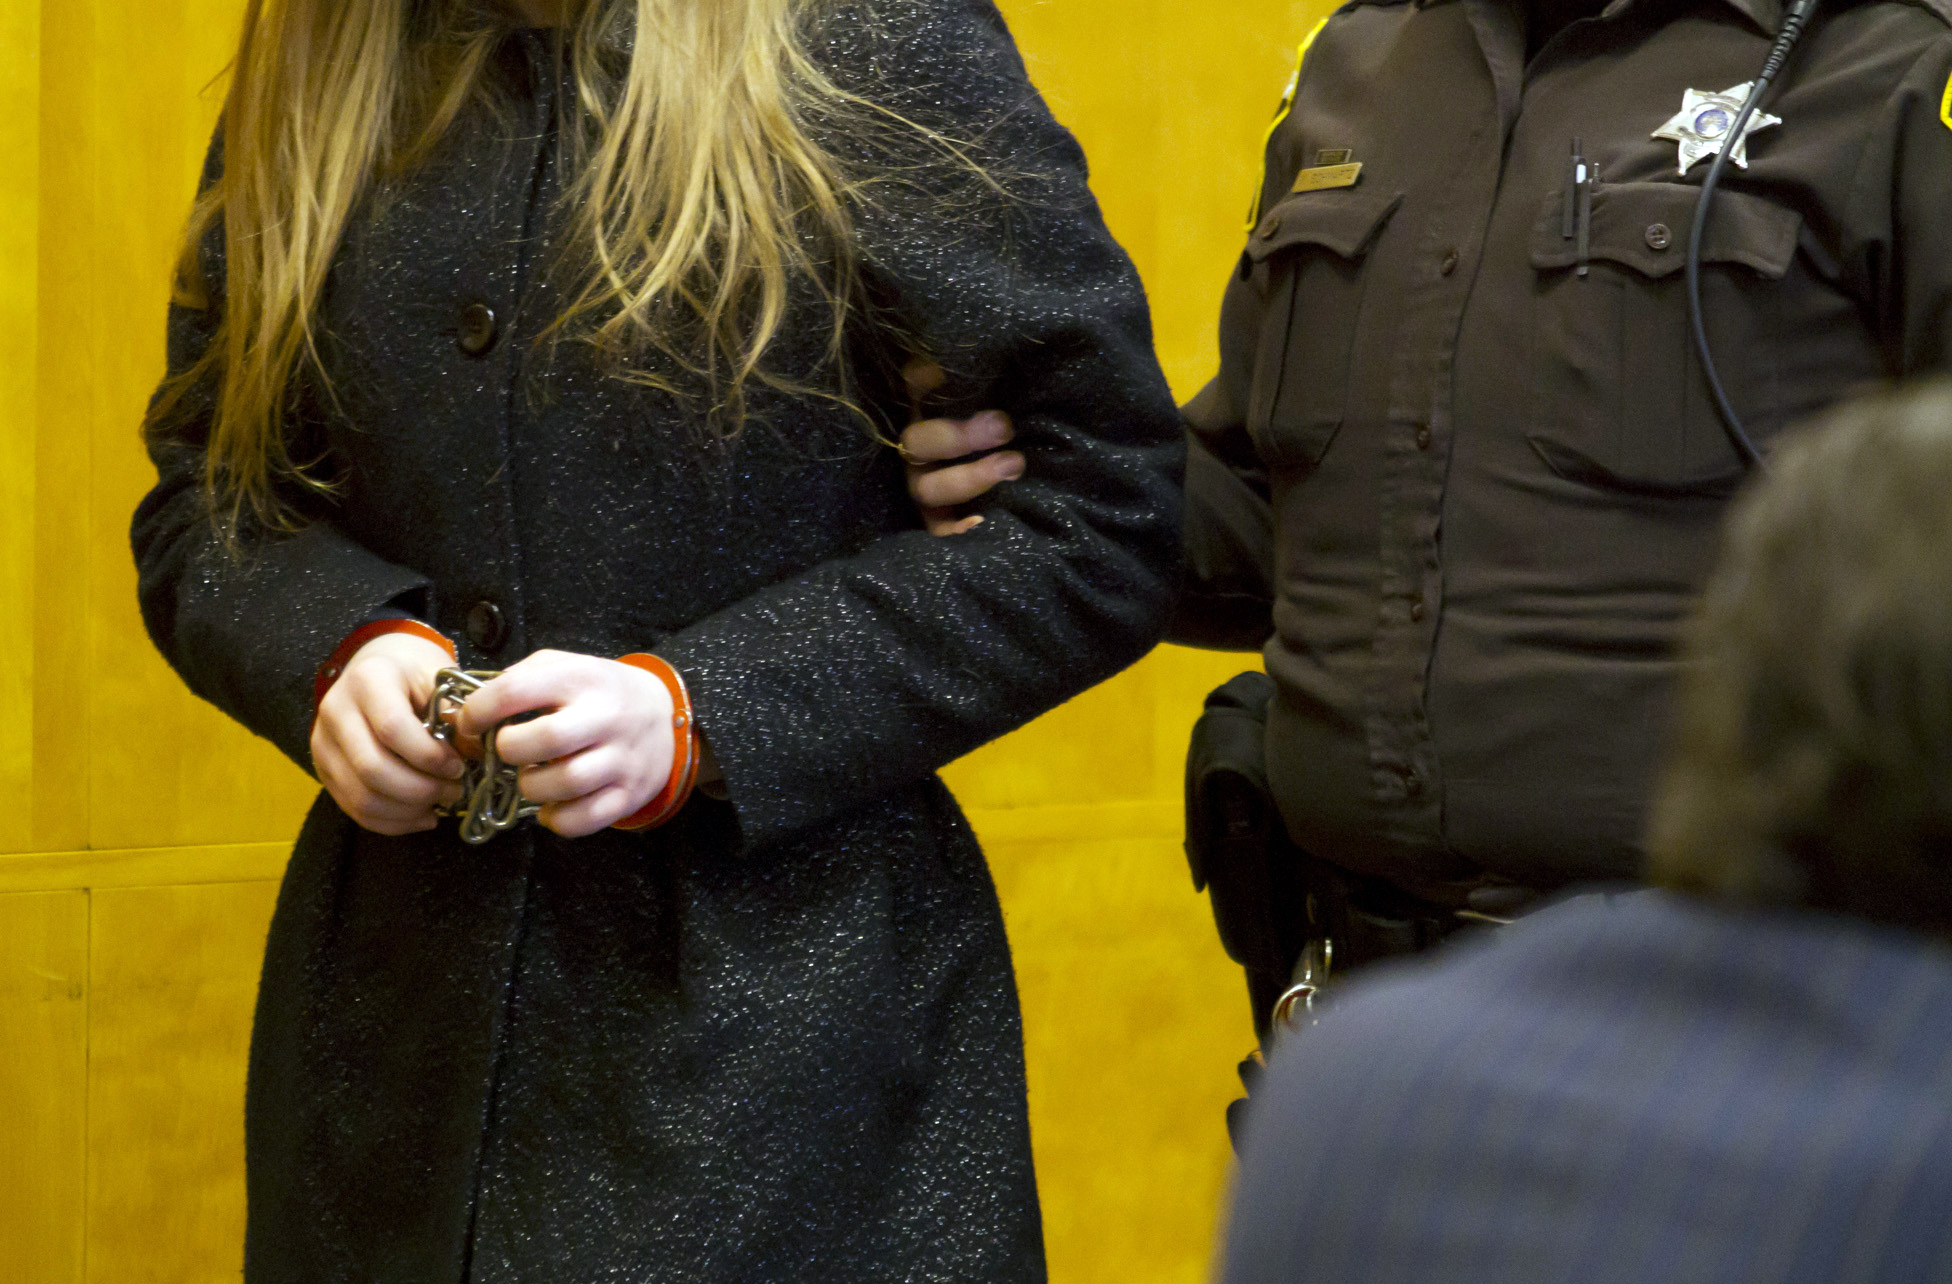 One of two 12-year-old girls accused of stabbing a classmate to please the fictional character Slender Man is led into a courtroom at the Waukesha County Courthouse in Waukesha, Wis., on Nov. 18, 2014